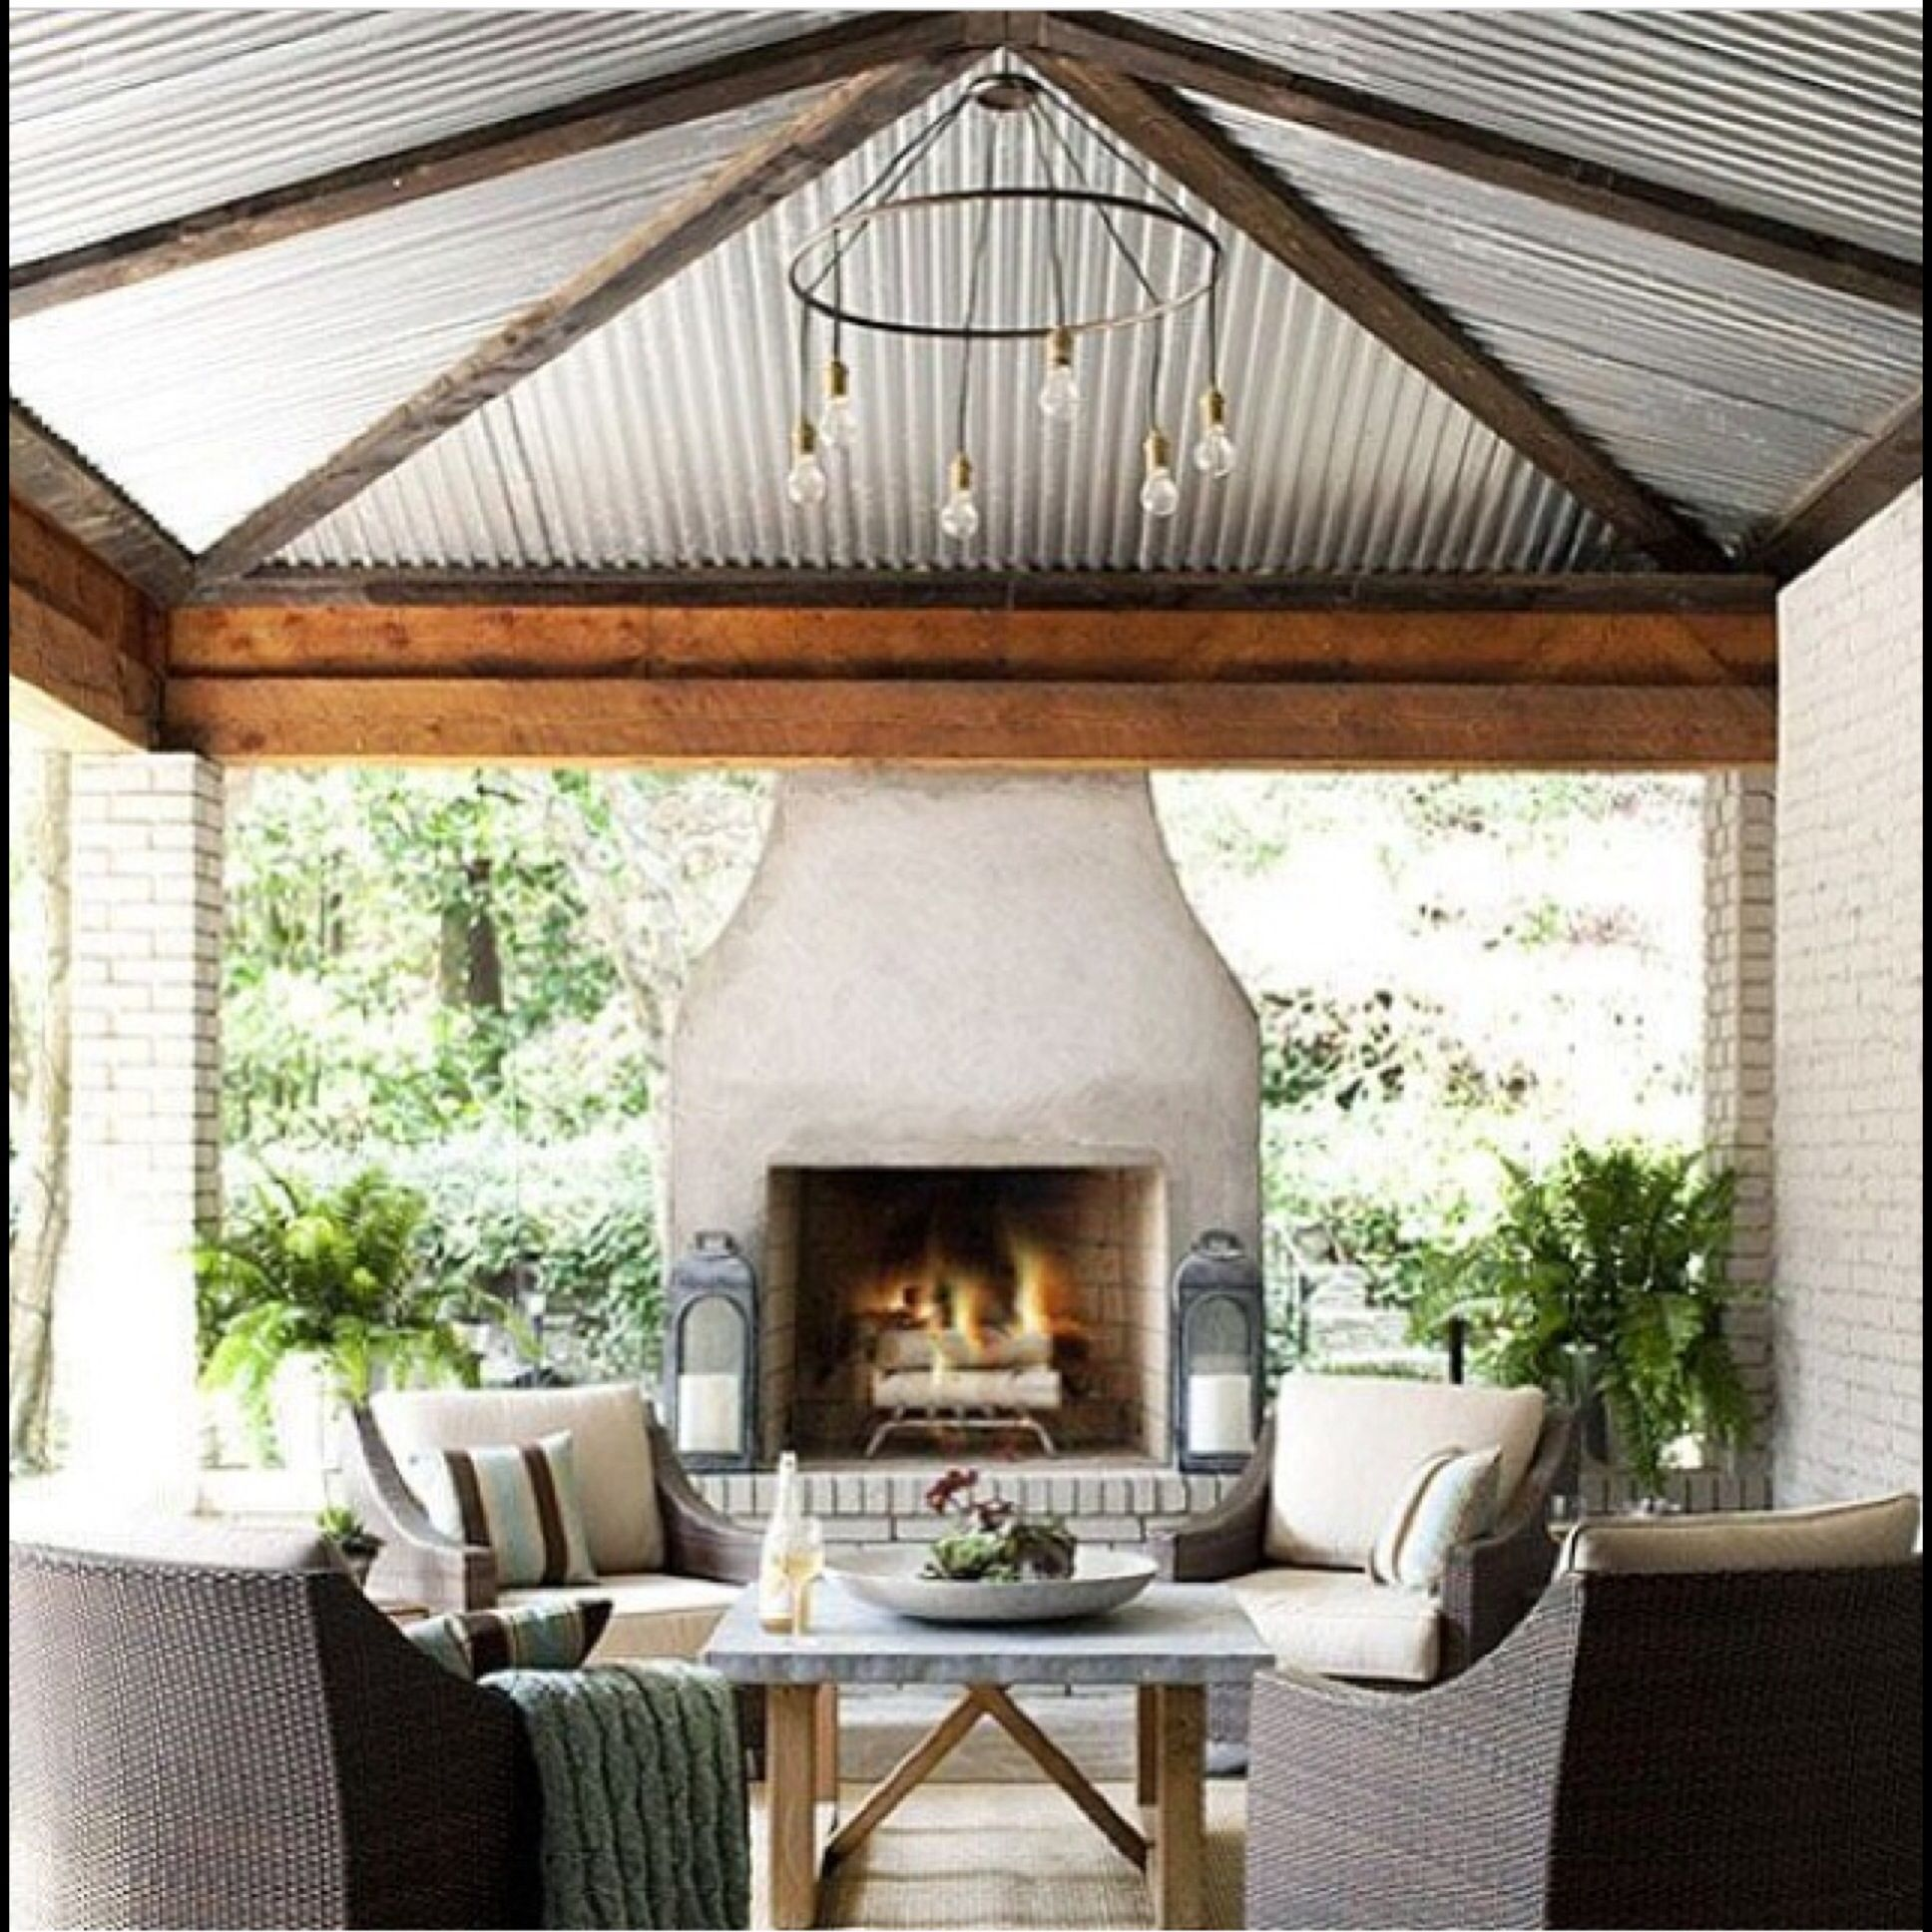 Garden Seating Ideas For Your Outdoor Living Room: Outdoor Fireplace Designs, Outdoor Living